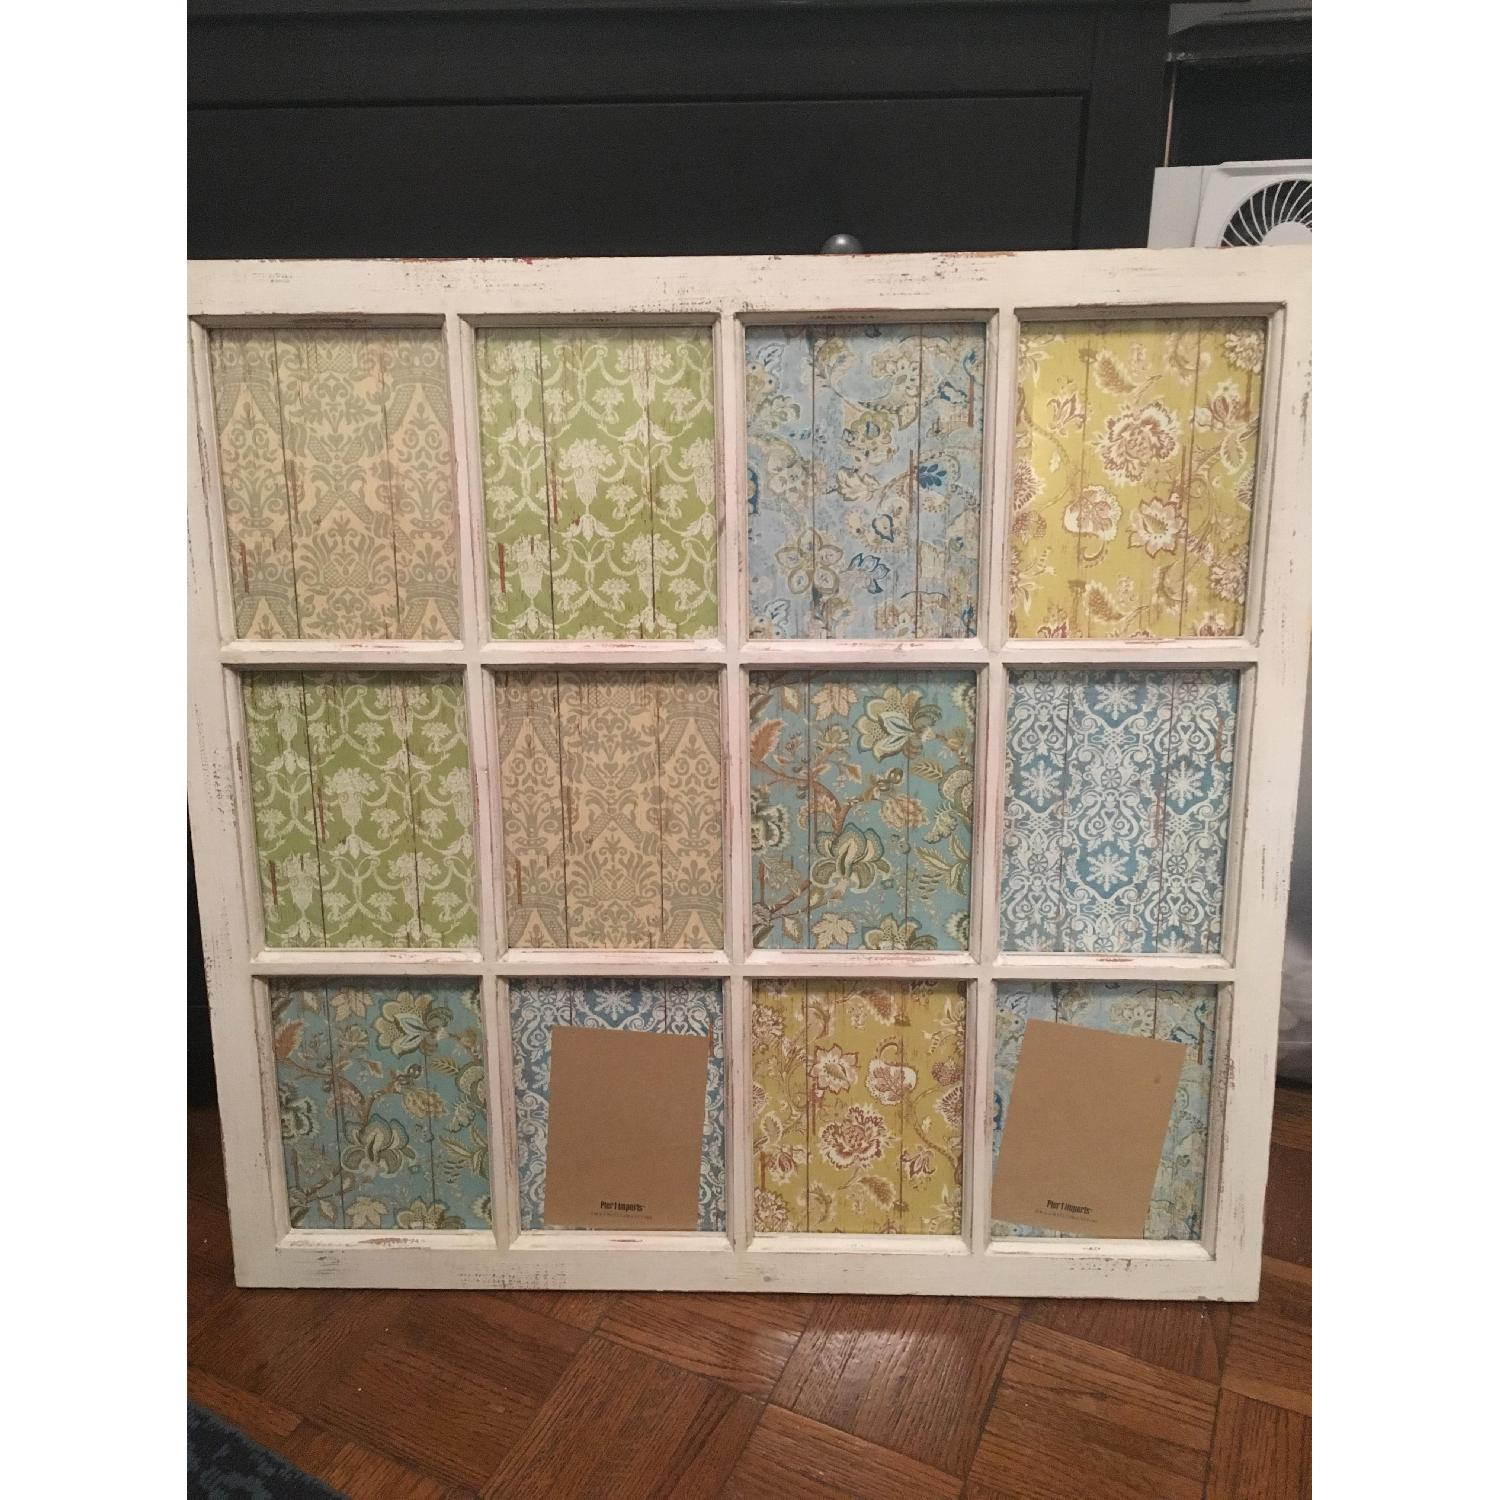 Pier 1 Wall Decor Multi Picture Frame - image-1